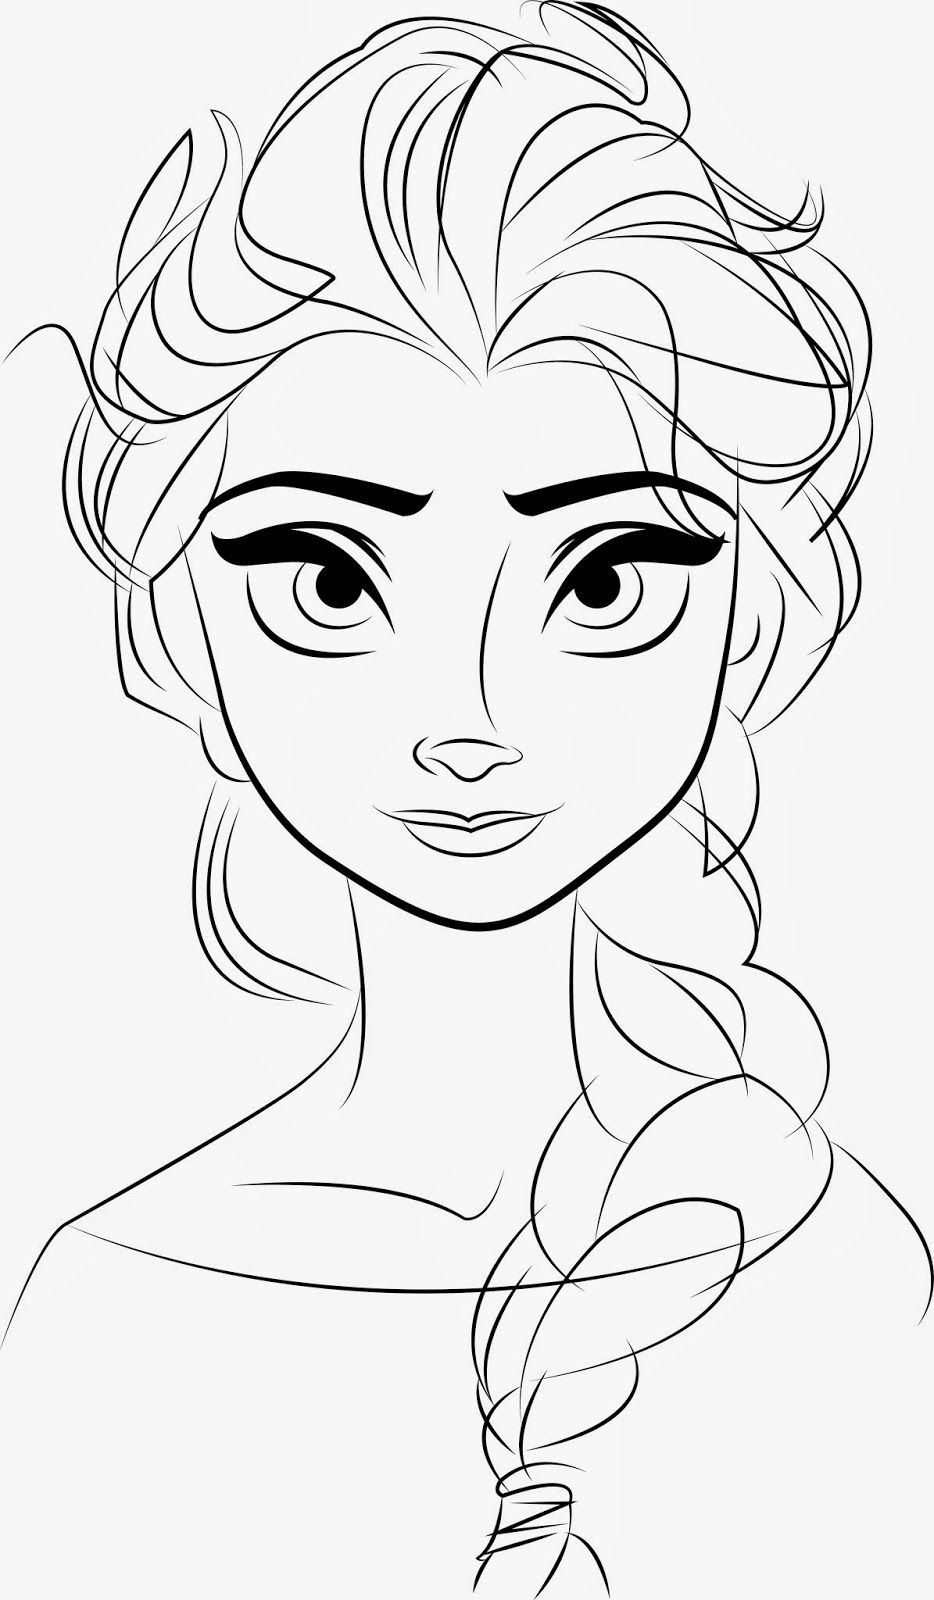 disney Frozen Elsa line drawings